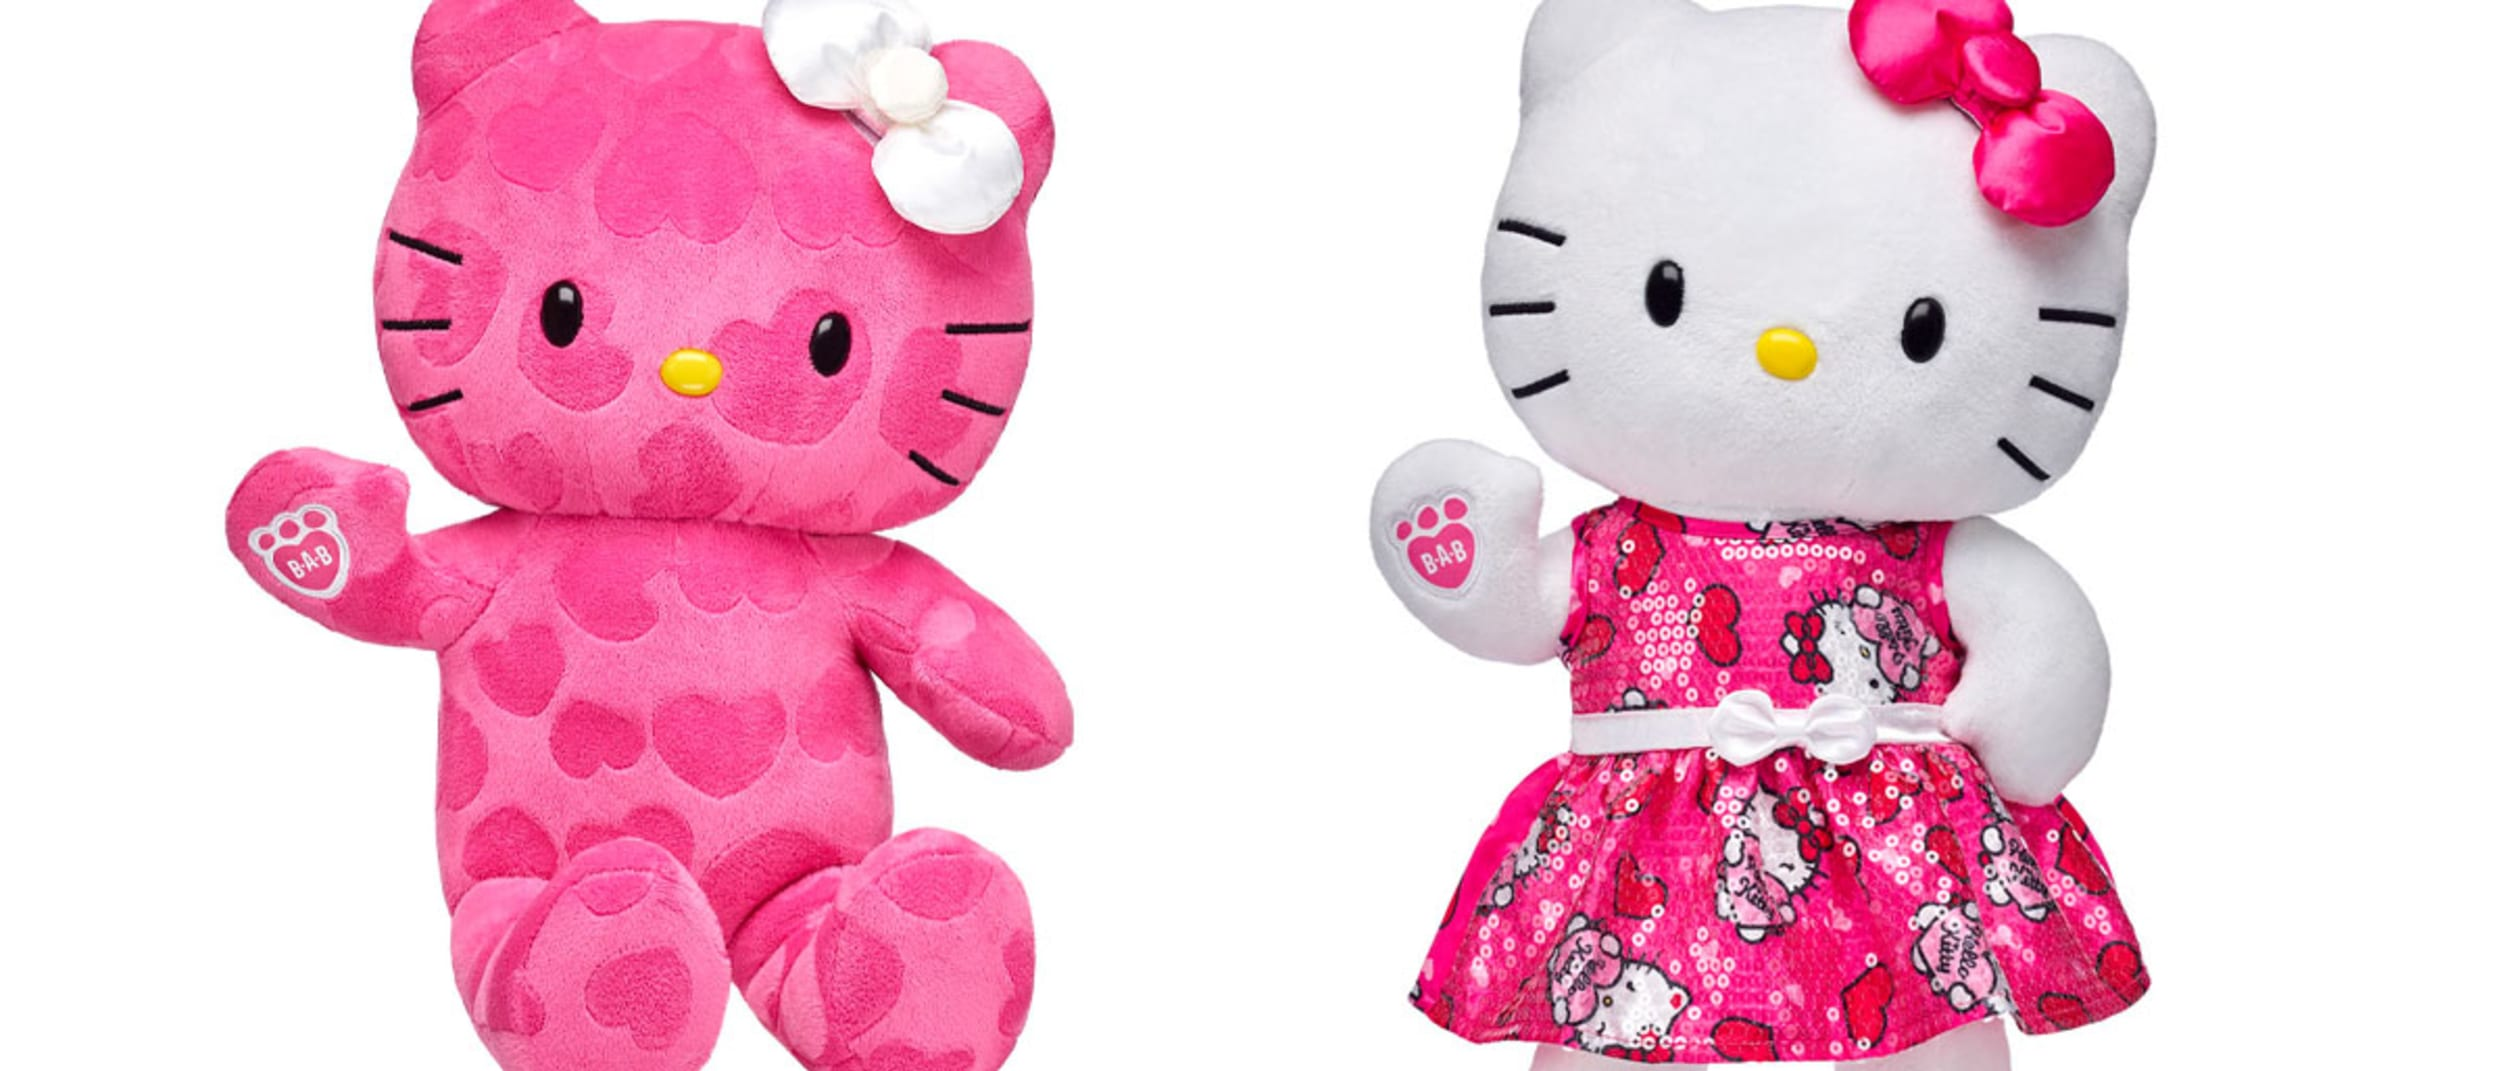 Hello Kitty at Build-A-Bear Workshop!